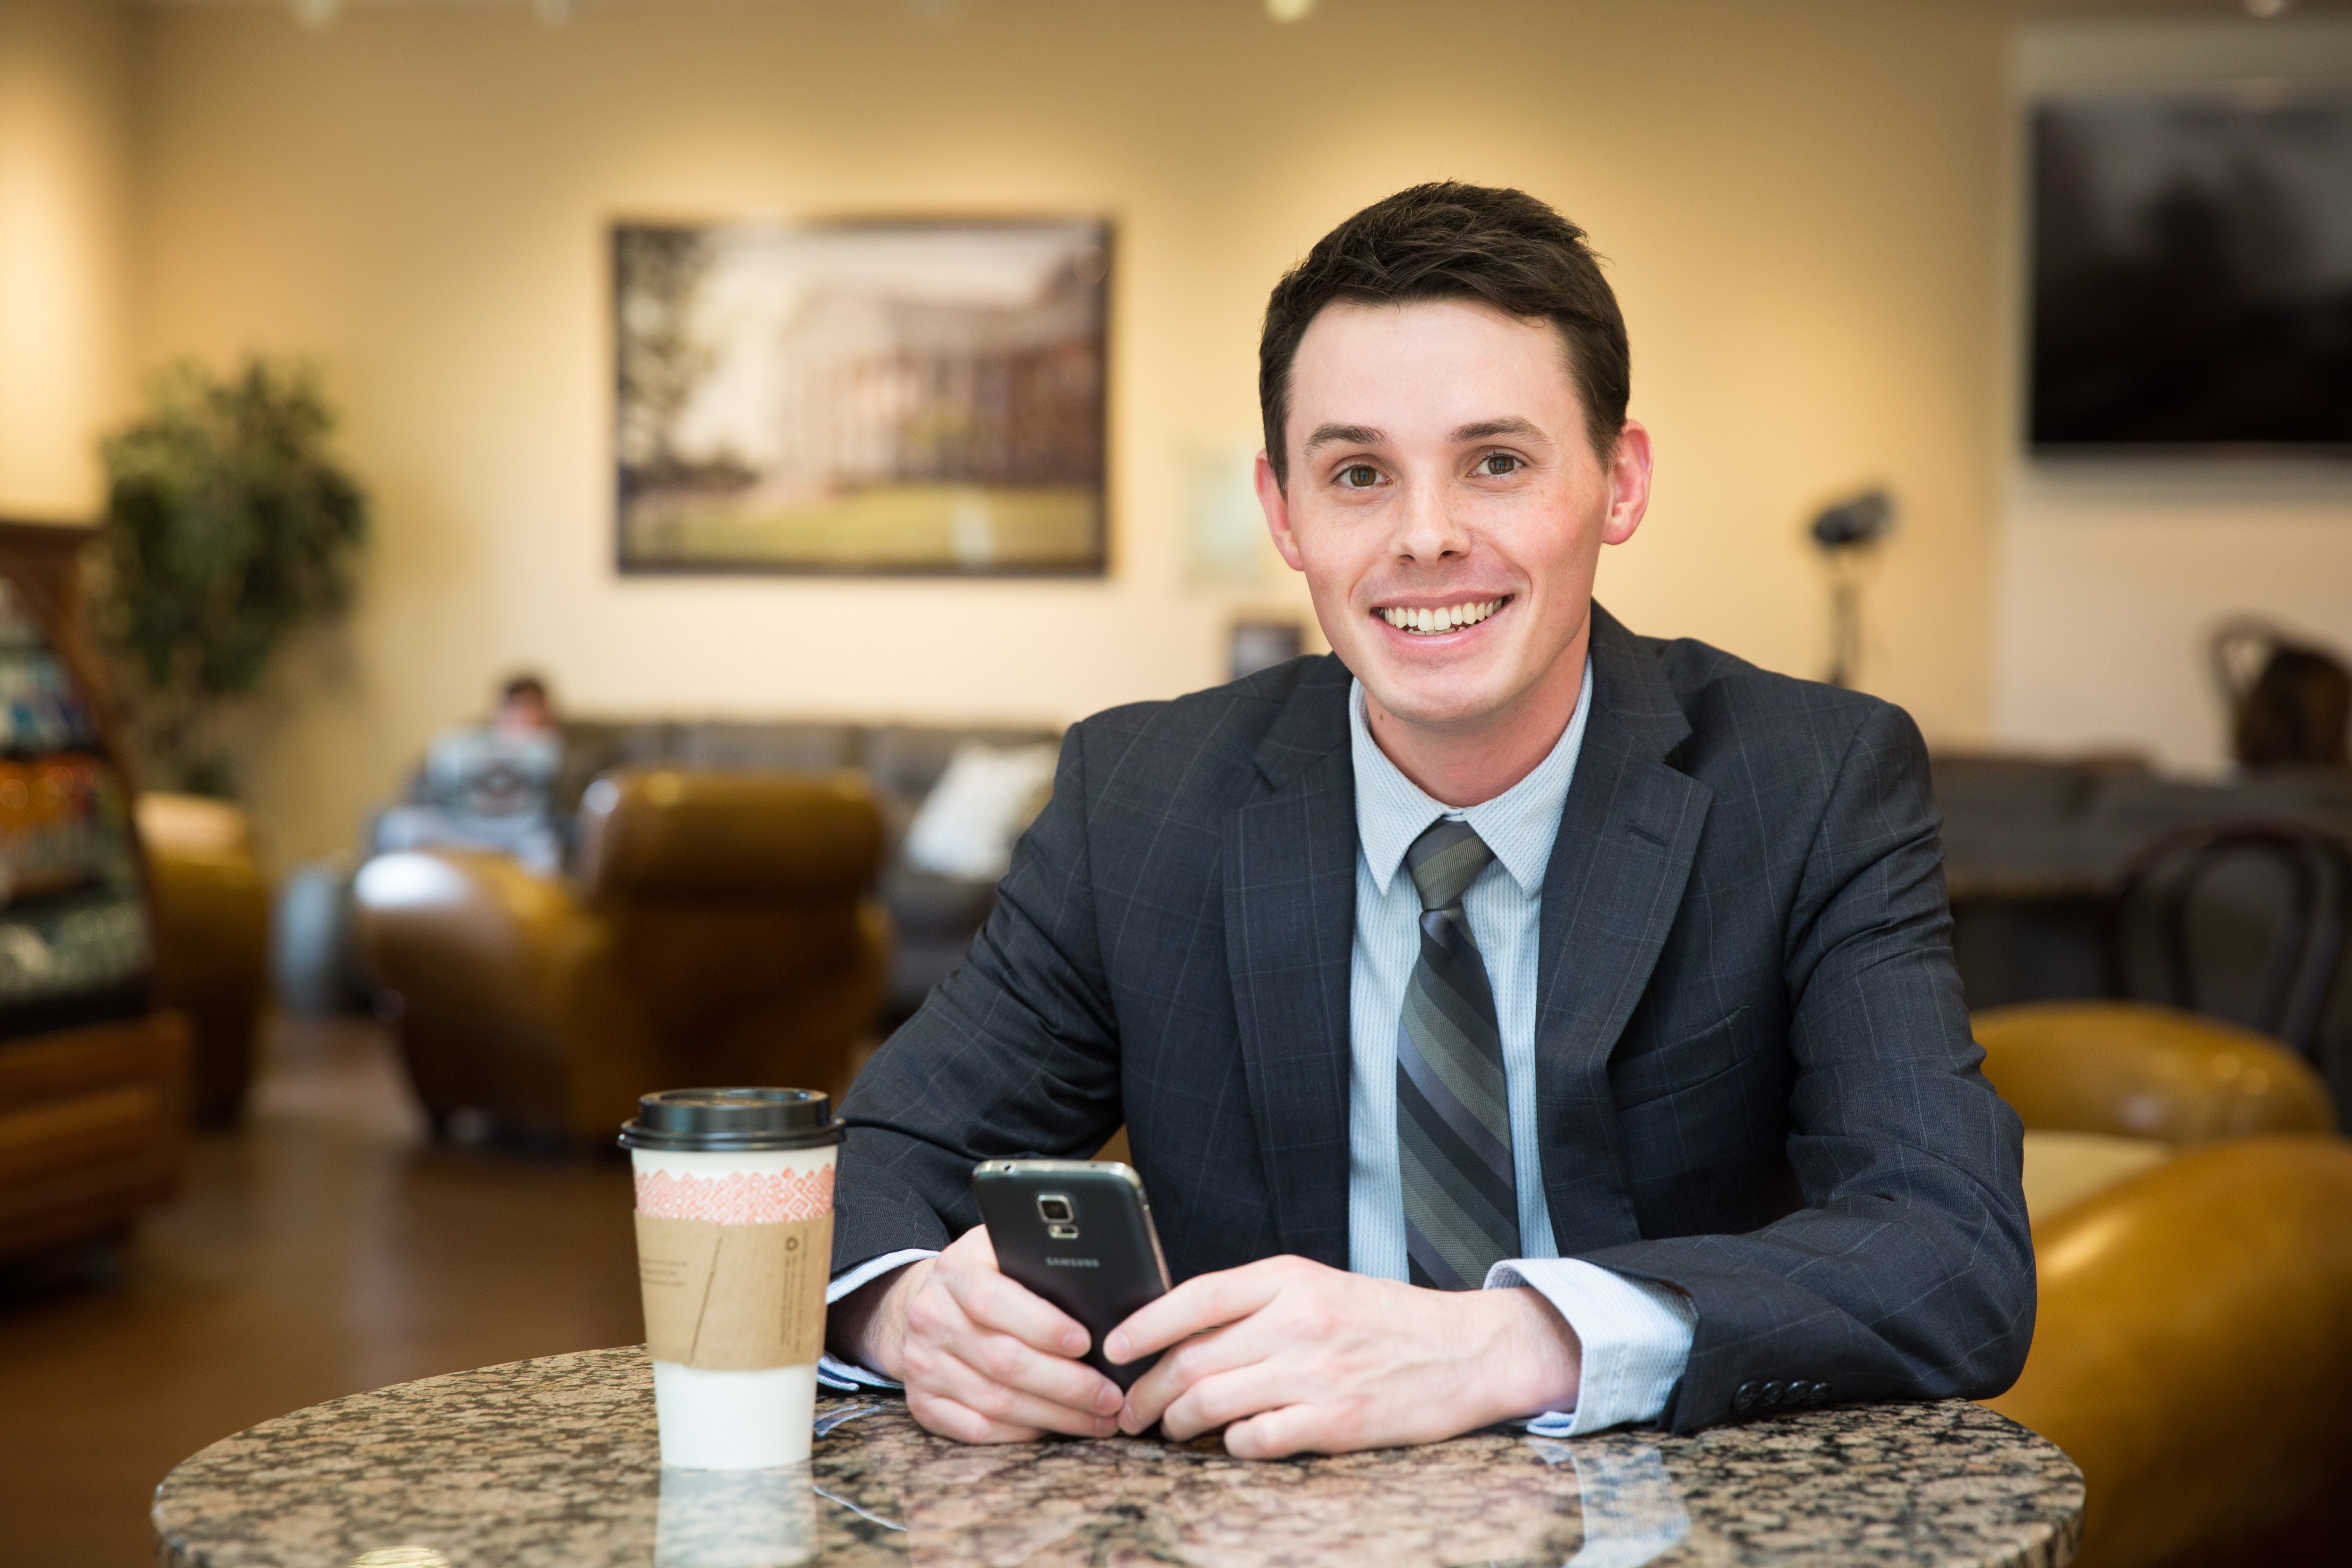 Patrick Henry College Student in the Peet's Coffee Shop on campus